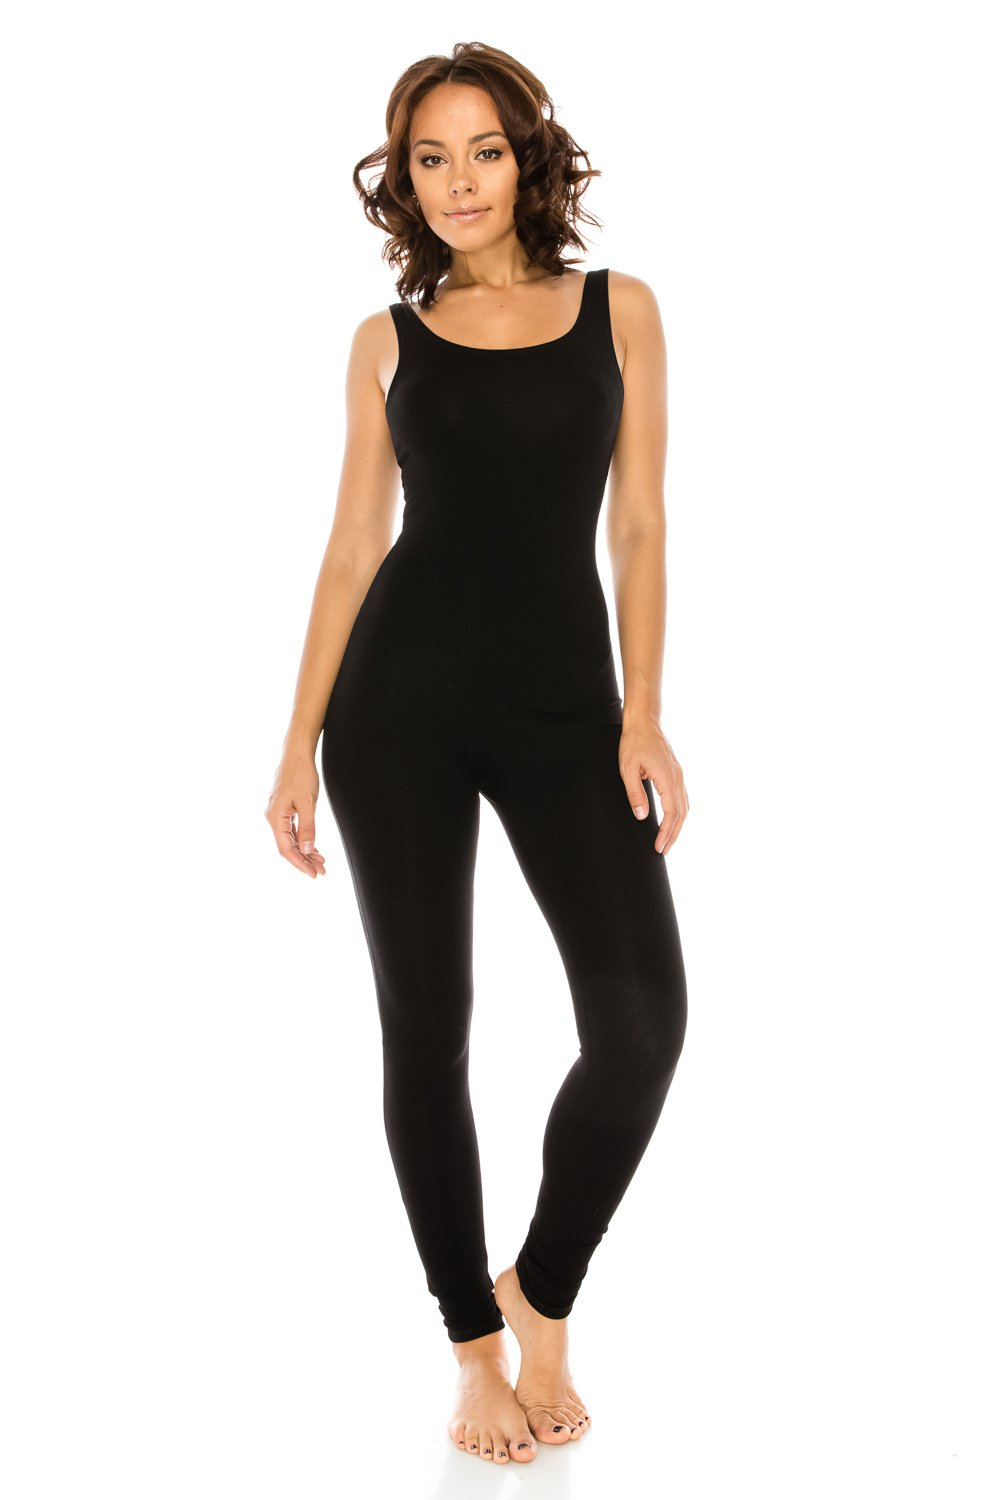 The Classic Women's Stretch Cotton Sleeveless One Piece Unitard Jumpsuit Playsuit in Black - Large